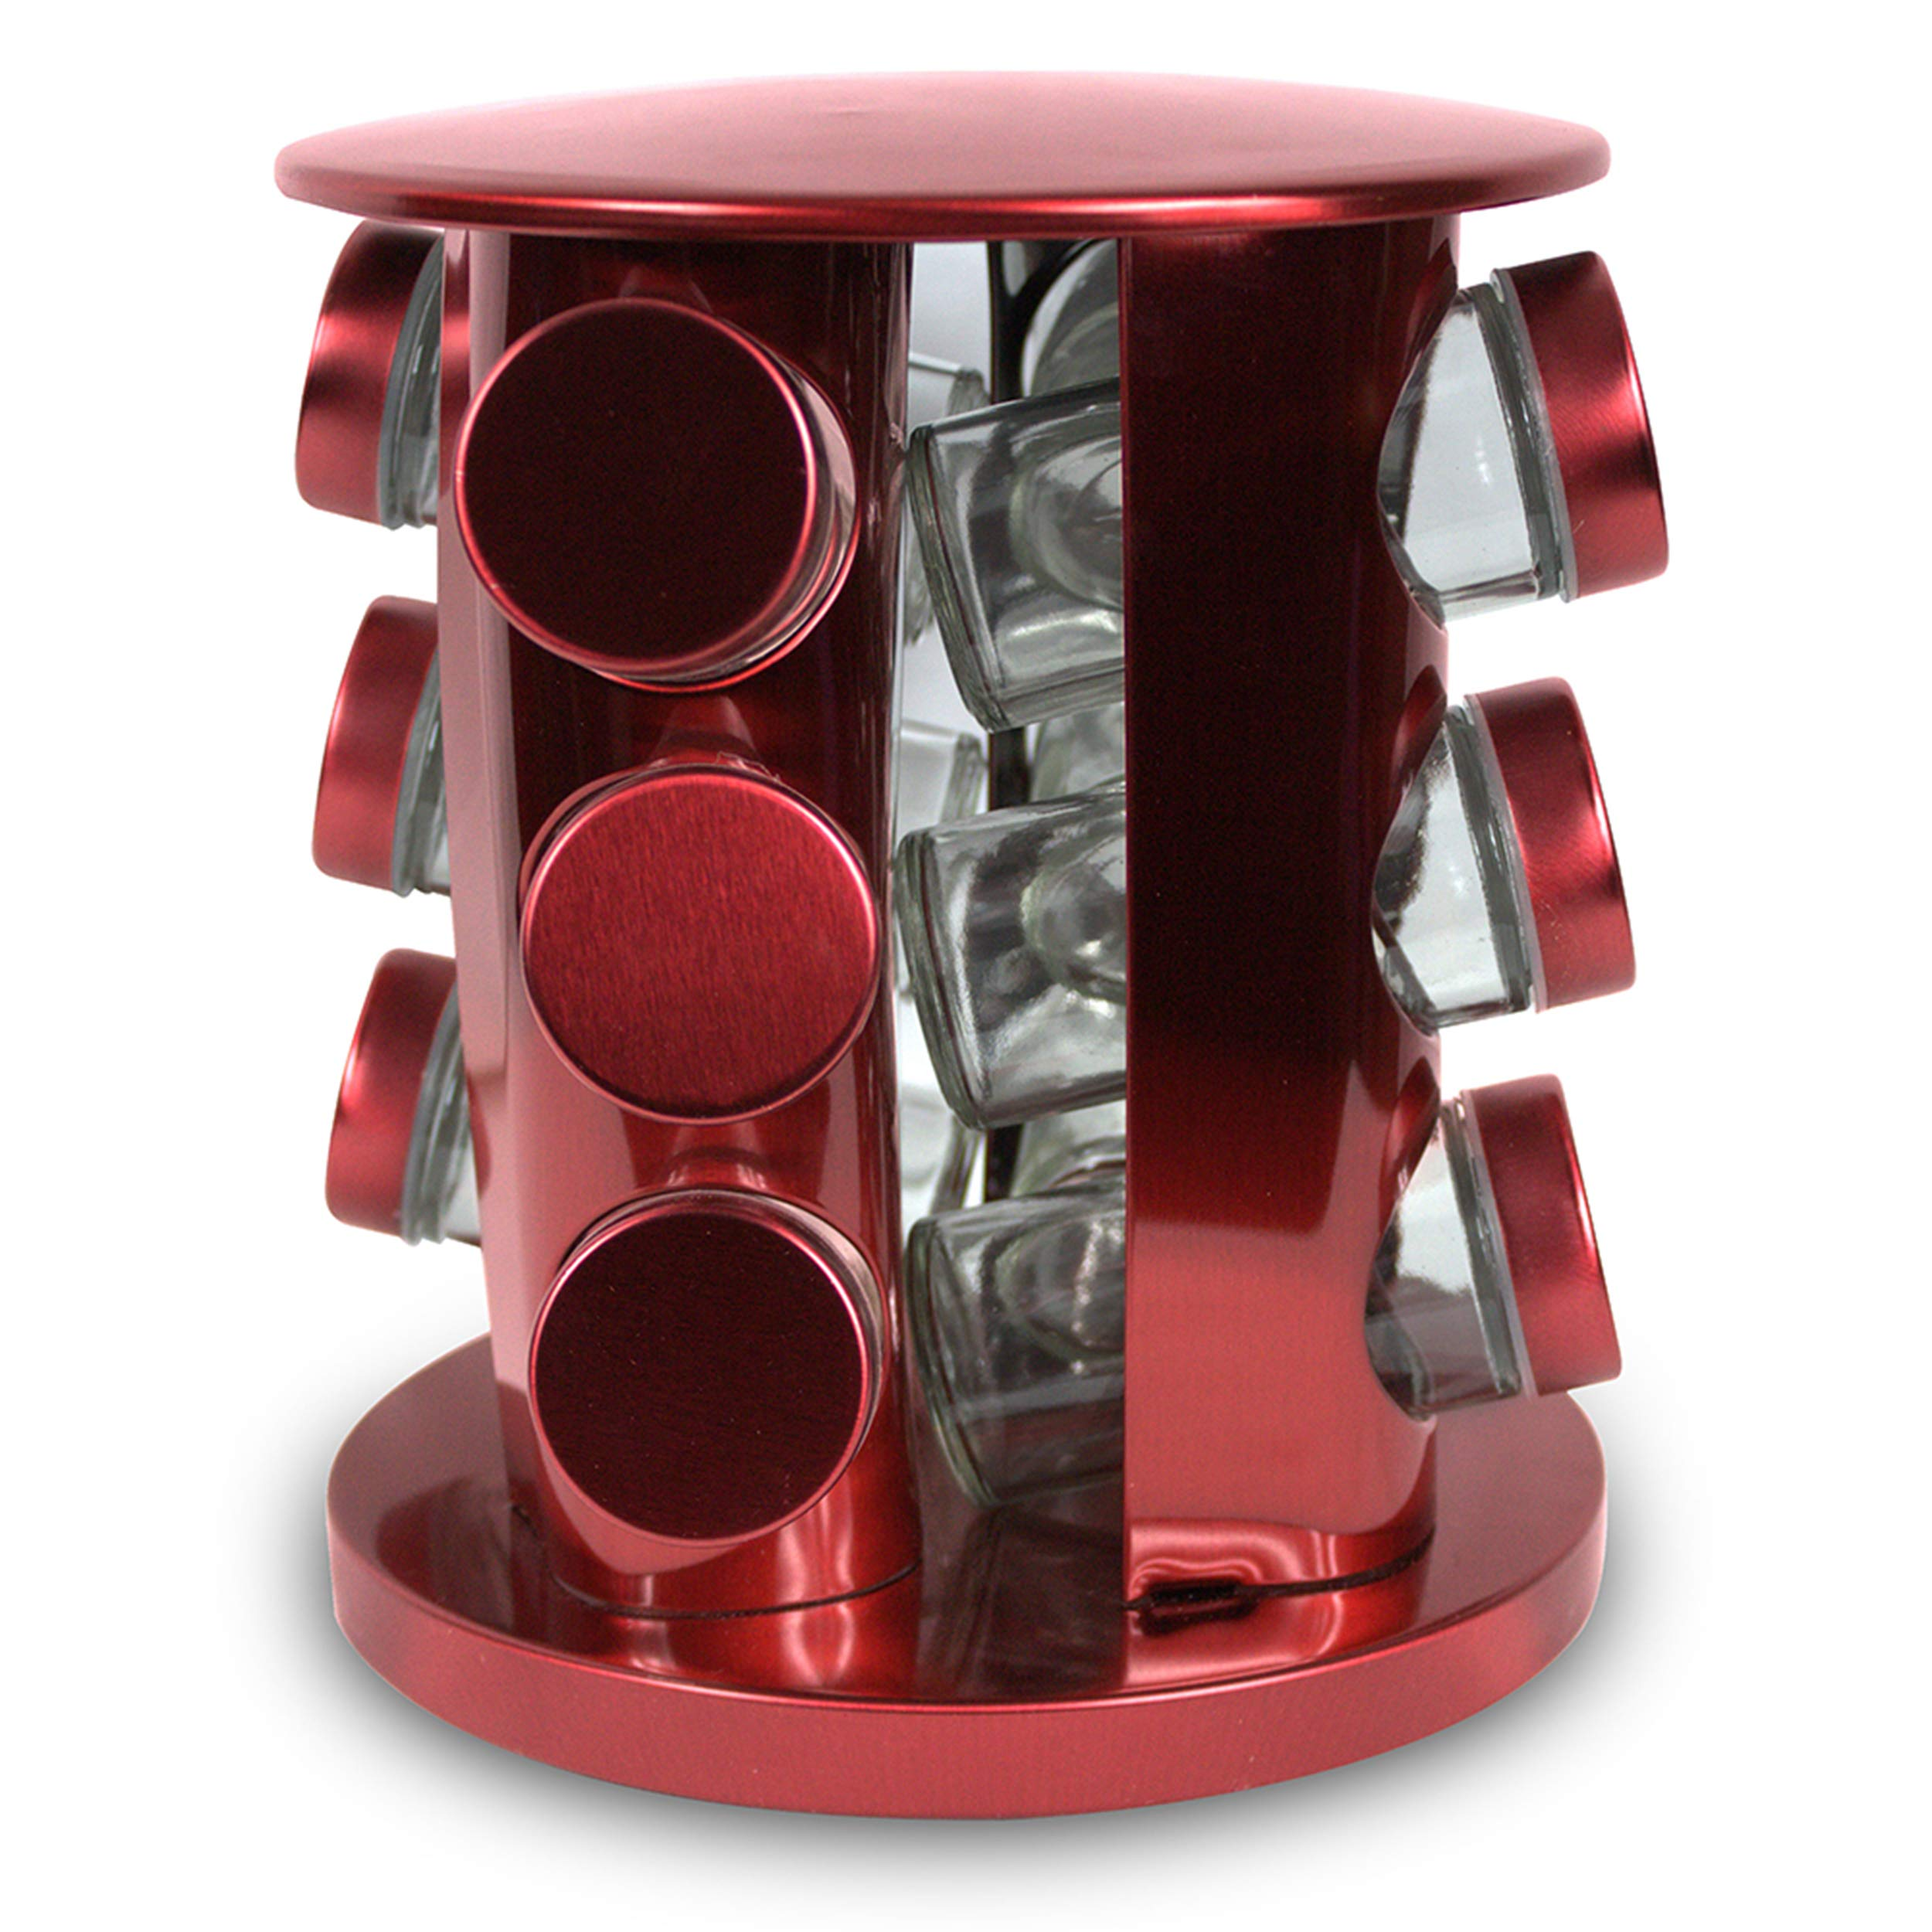 Rotating Kitchen Spice Rack Carousel 12 Jar Organizer for a Clutter Free Counter Top Metallic Red - Grand Sierra Designs by Grand Sierra Designs